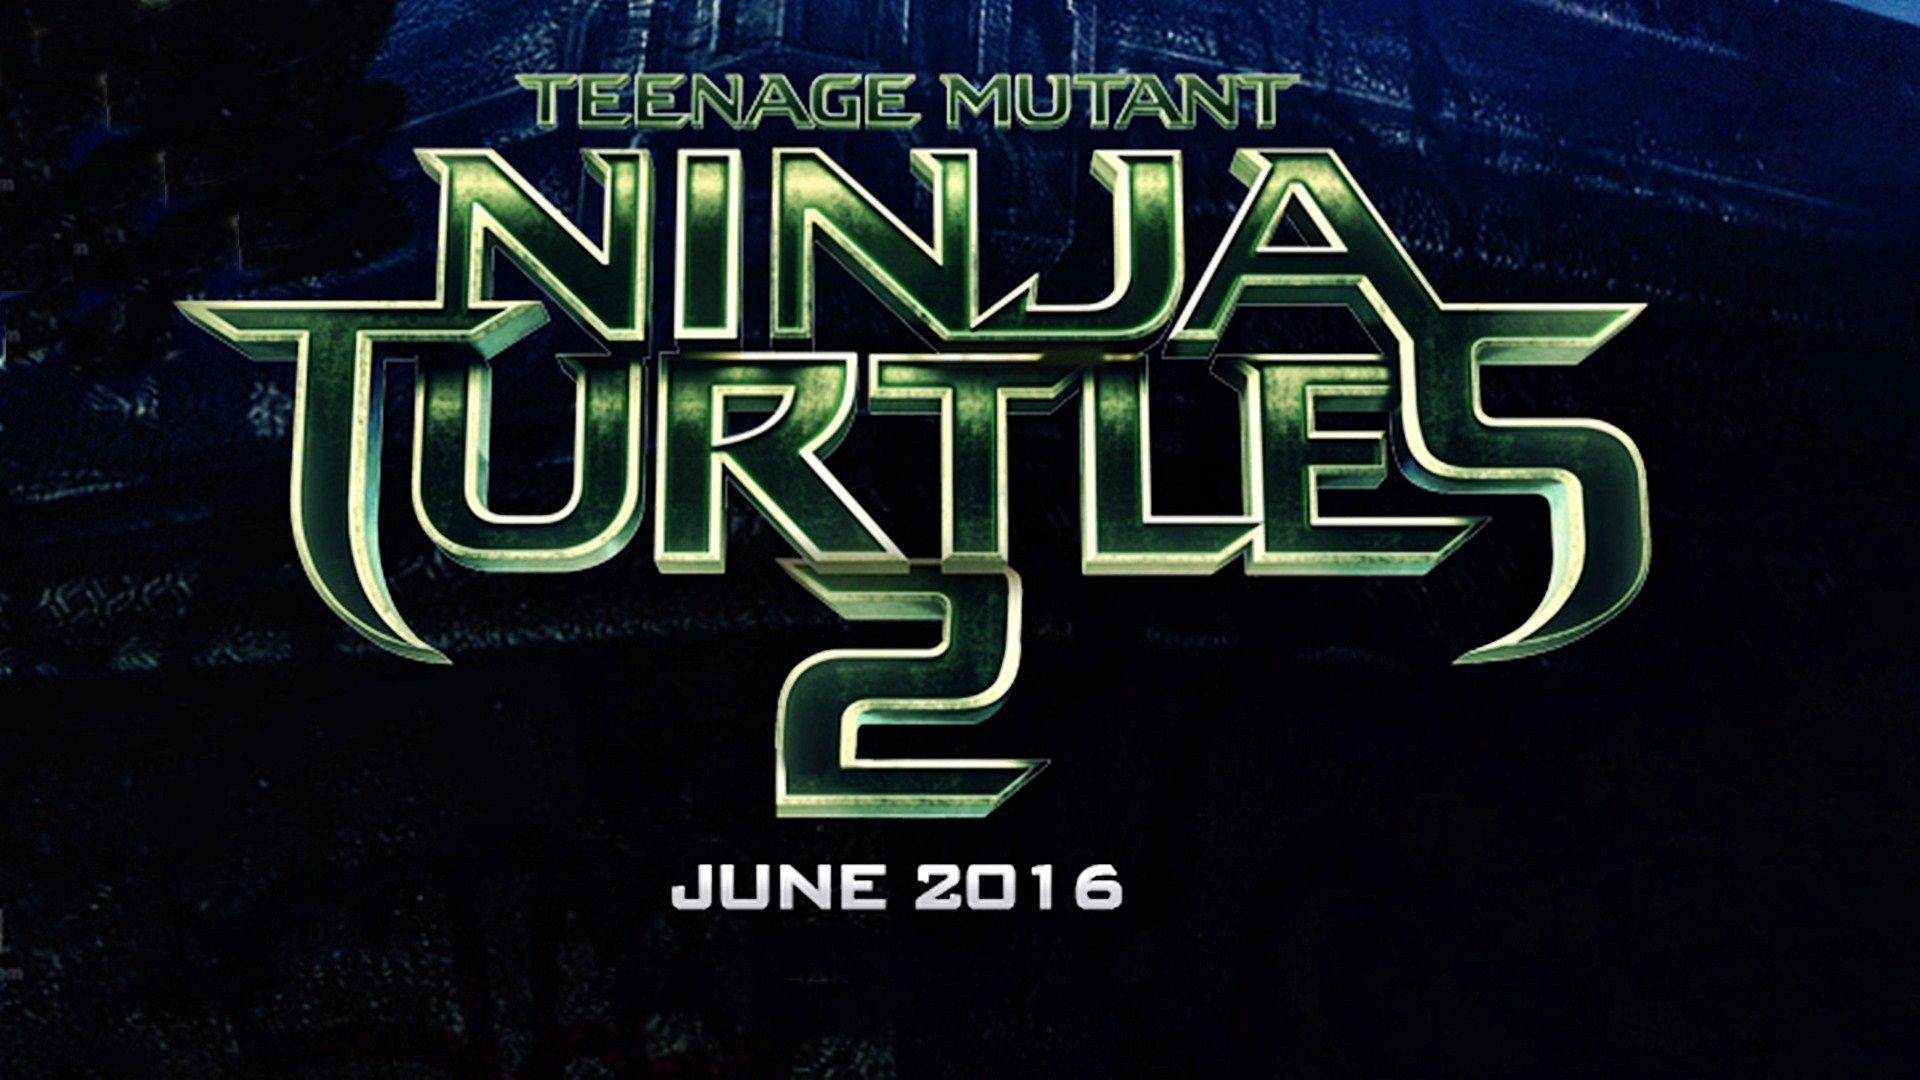 1920x1080 Teenage Mutant Ninja Turtles 2 Wallpapers High Resolution and .